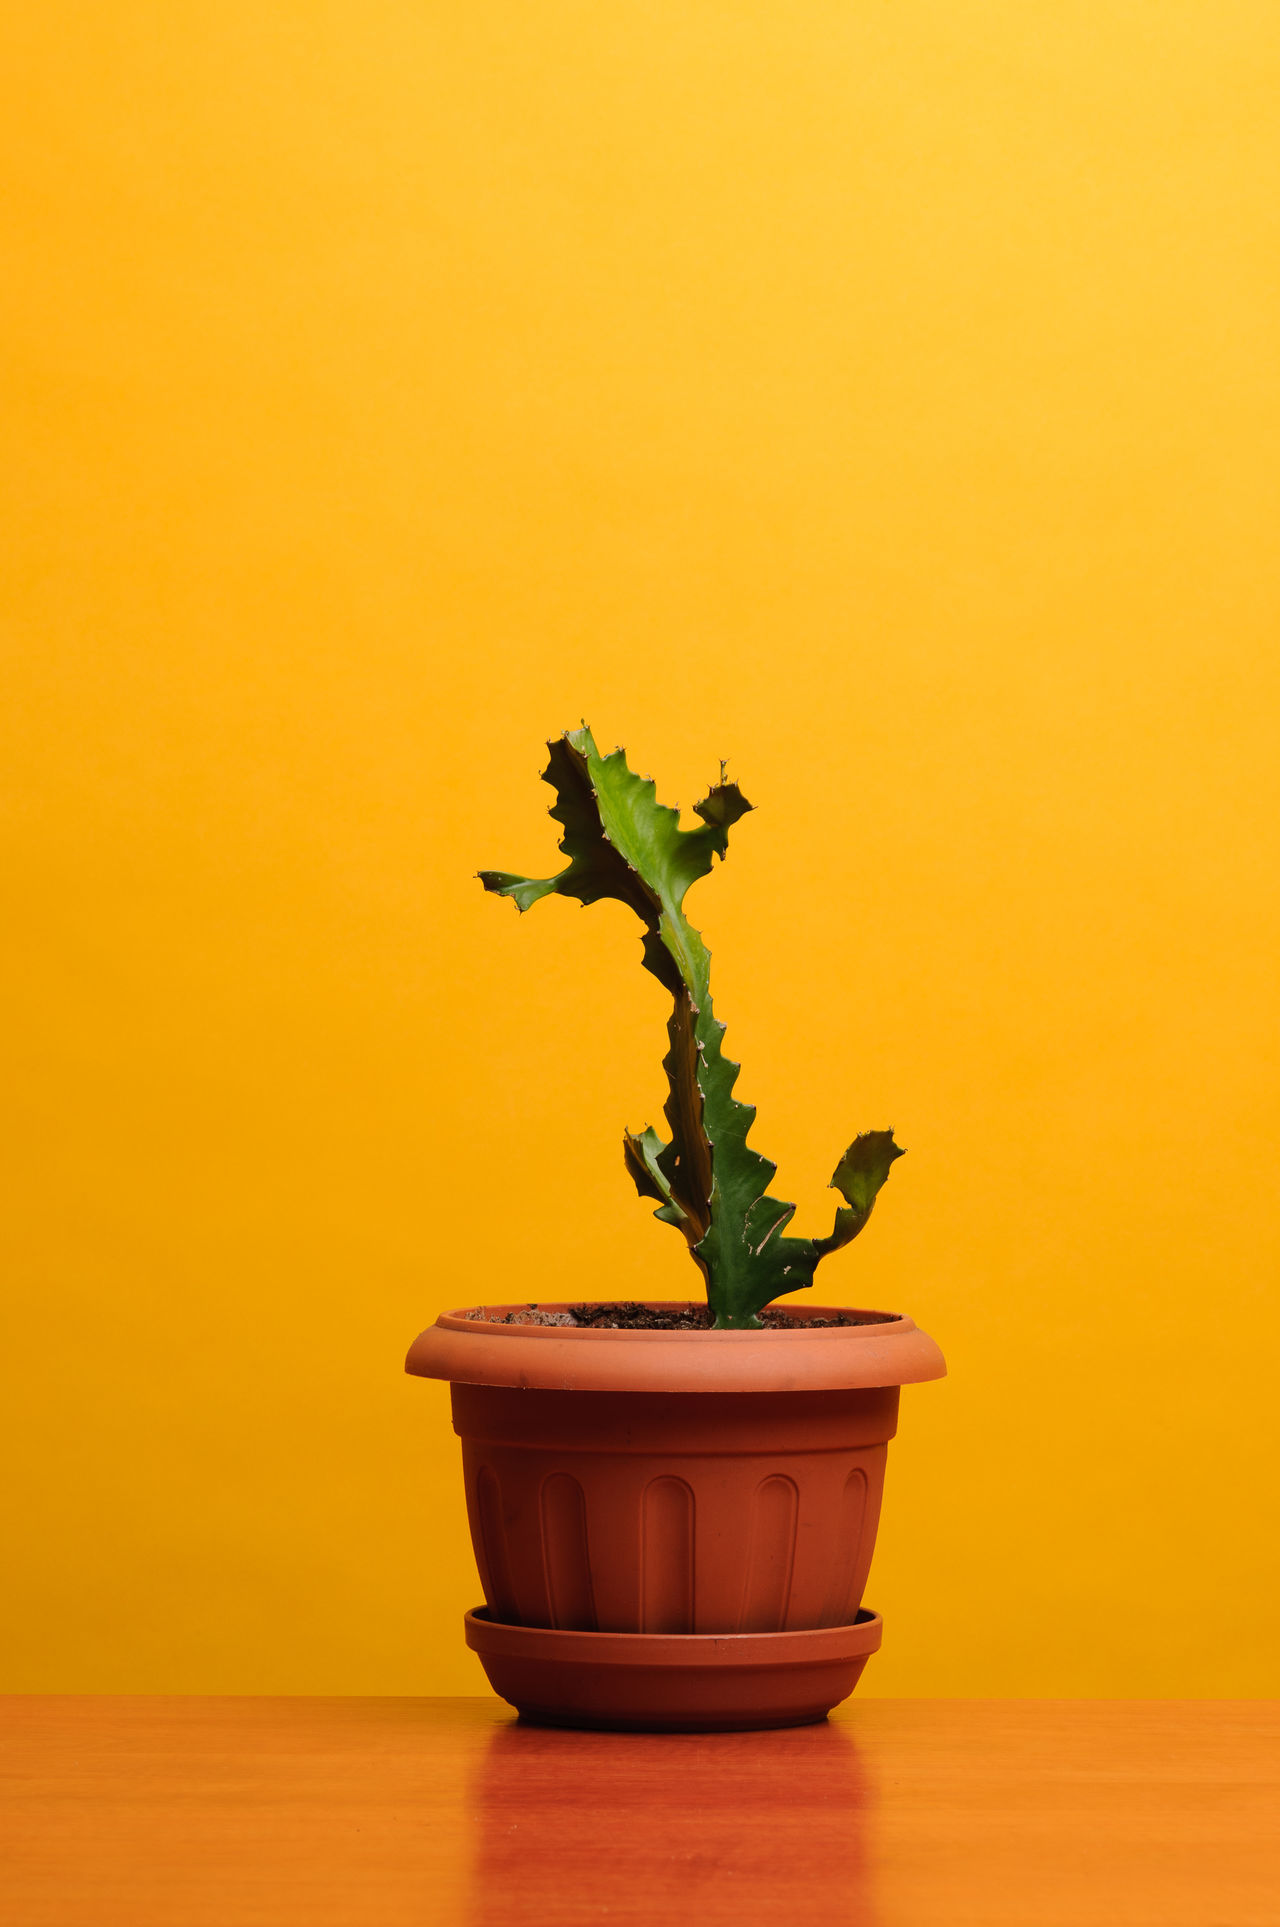 CLOSE-UP OF POTTED PLANT ON TABLE BY SEA